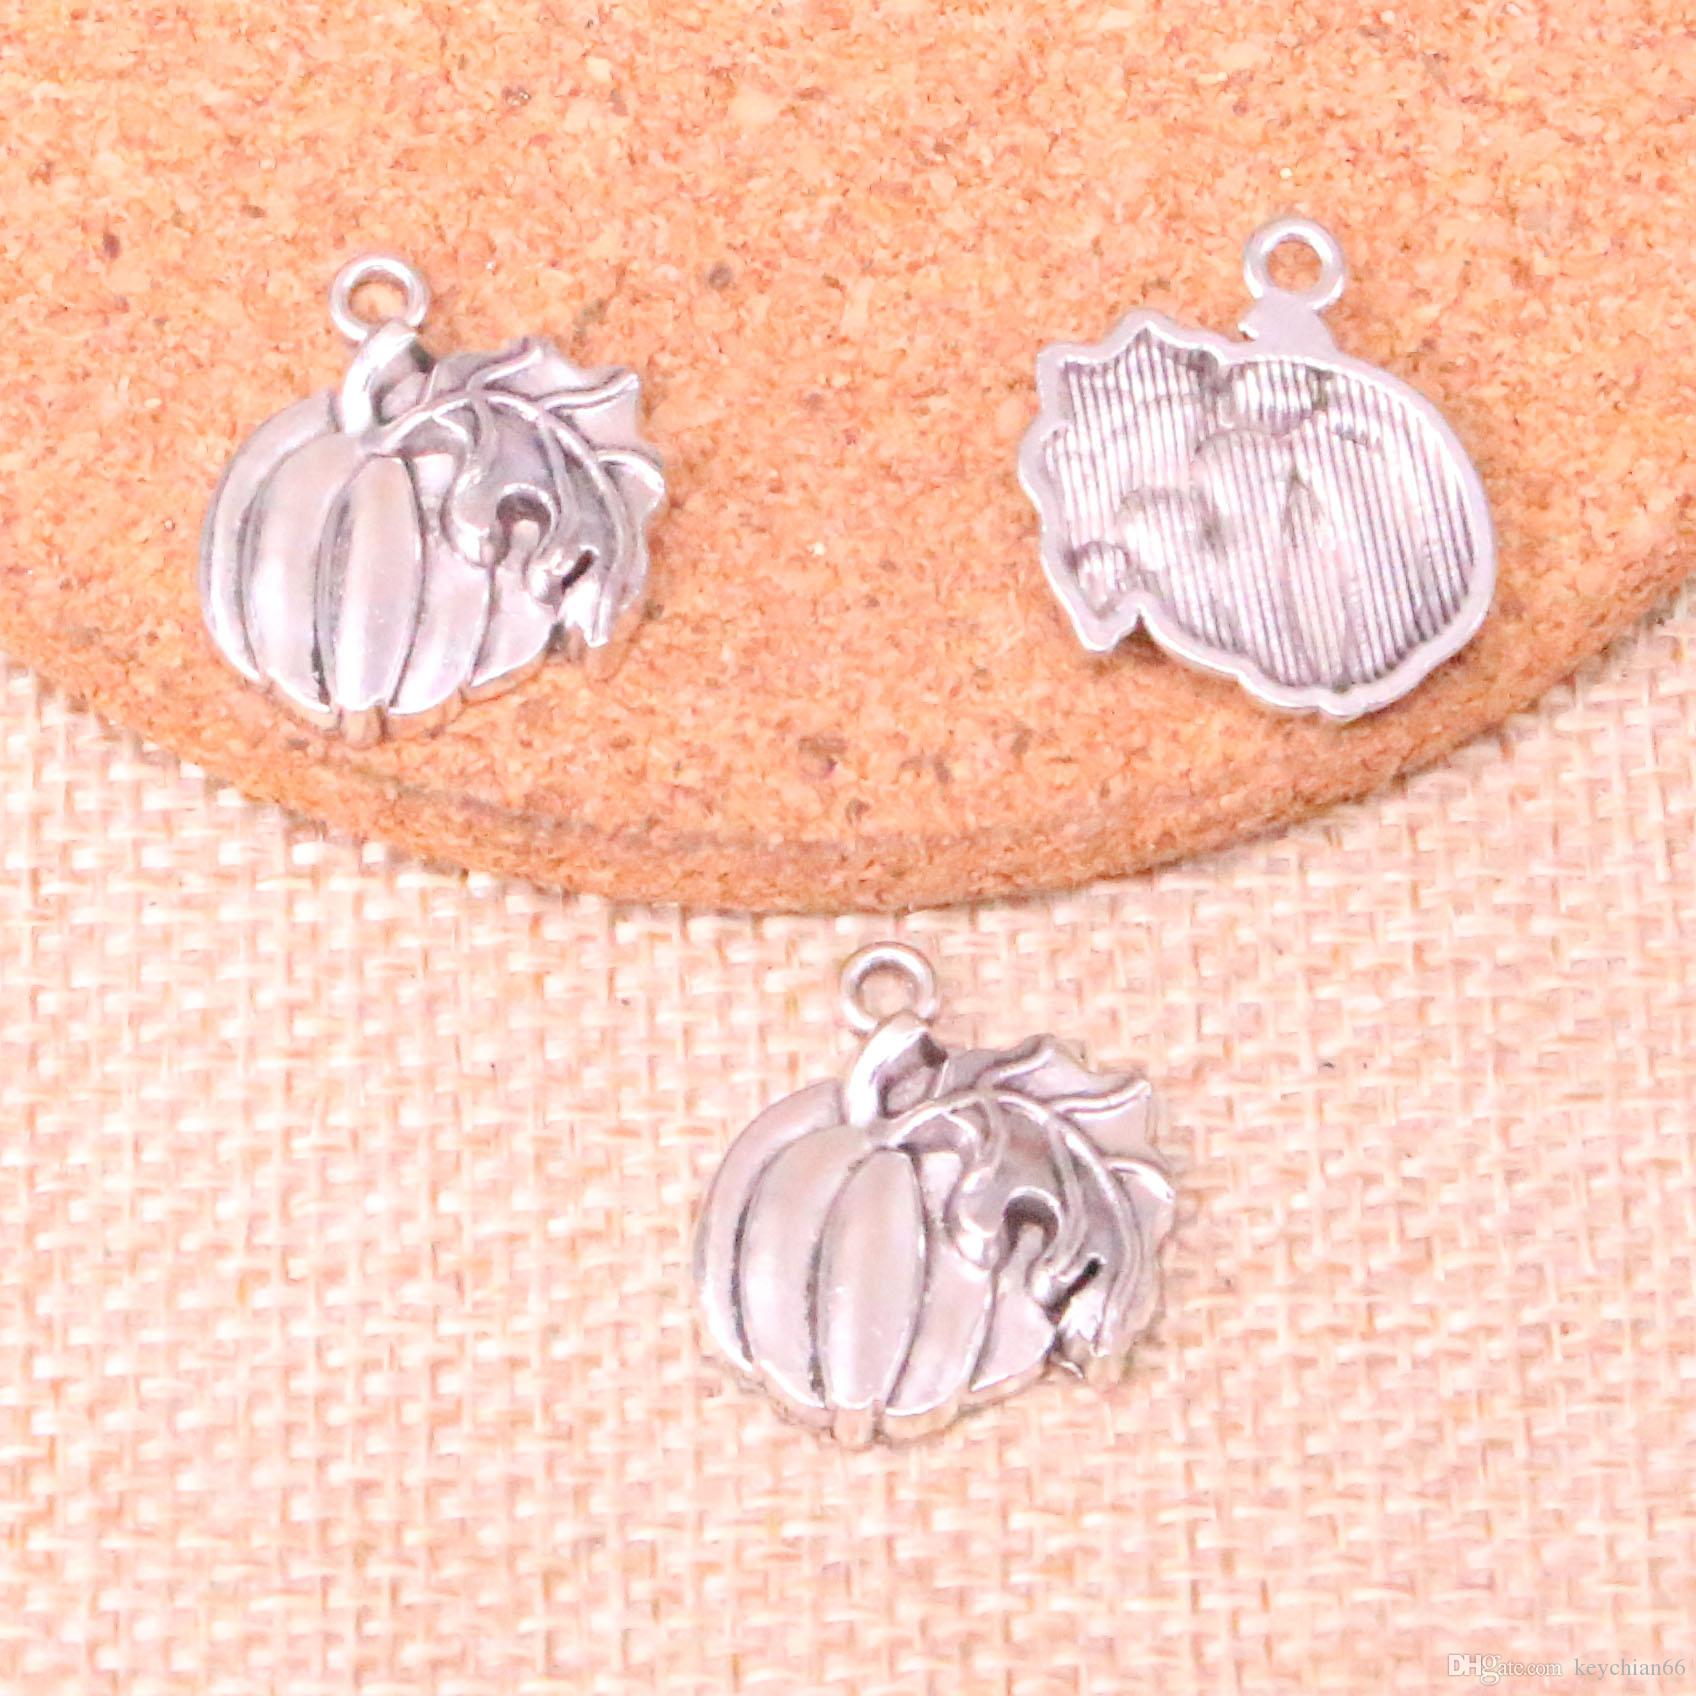 55pcs Antique silver pumpkin leaf fall thanksgiving halloween Charms Pendant Fit Bracelets Necklace DIY Metal Jewelry Making 21*18mm